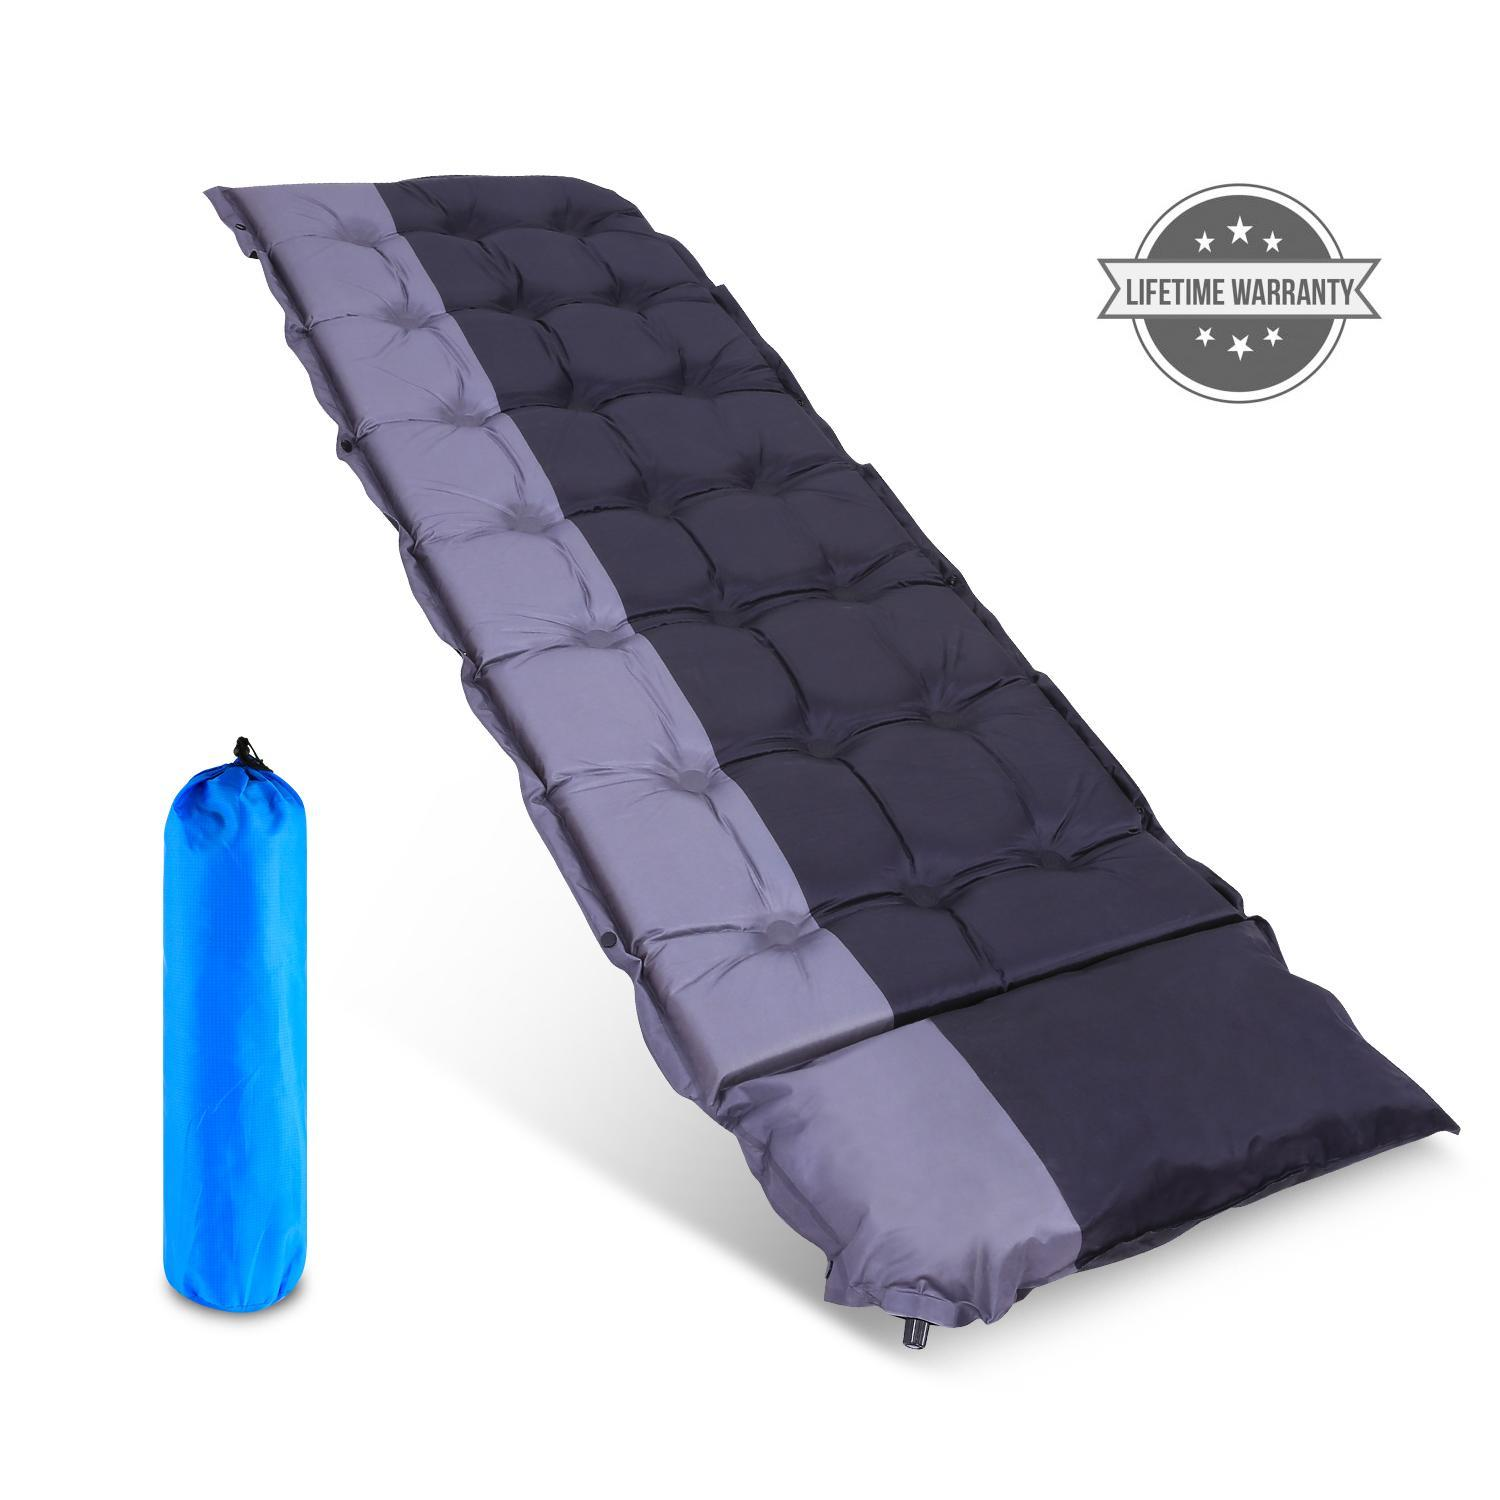 Christmass Sale!!! Self Inflating Sleeping Pad Outdoors with Patches and Carrying Bag Ideal for Camping Hiking Traveling HFON